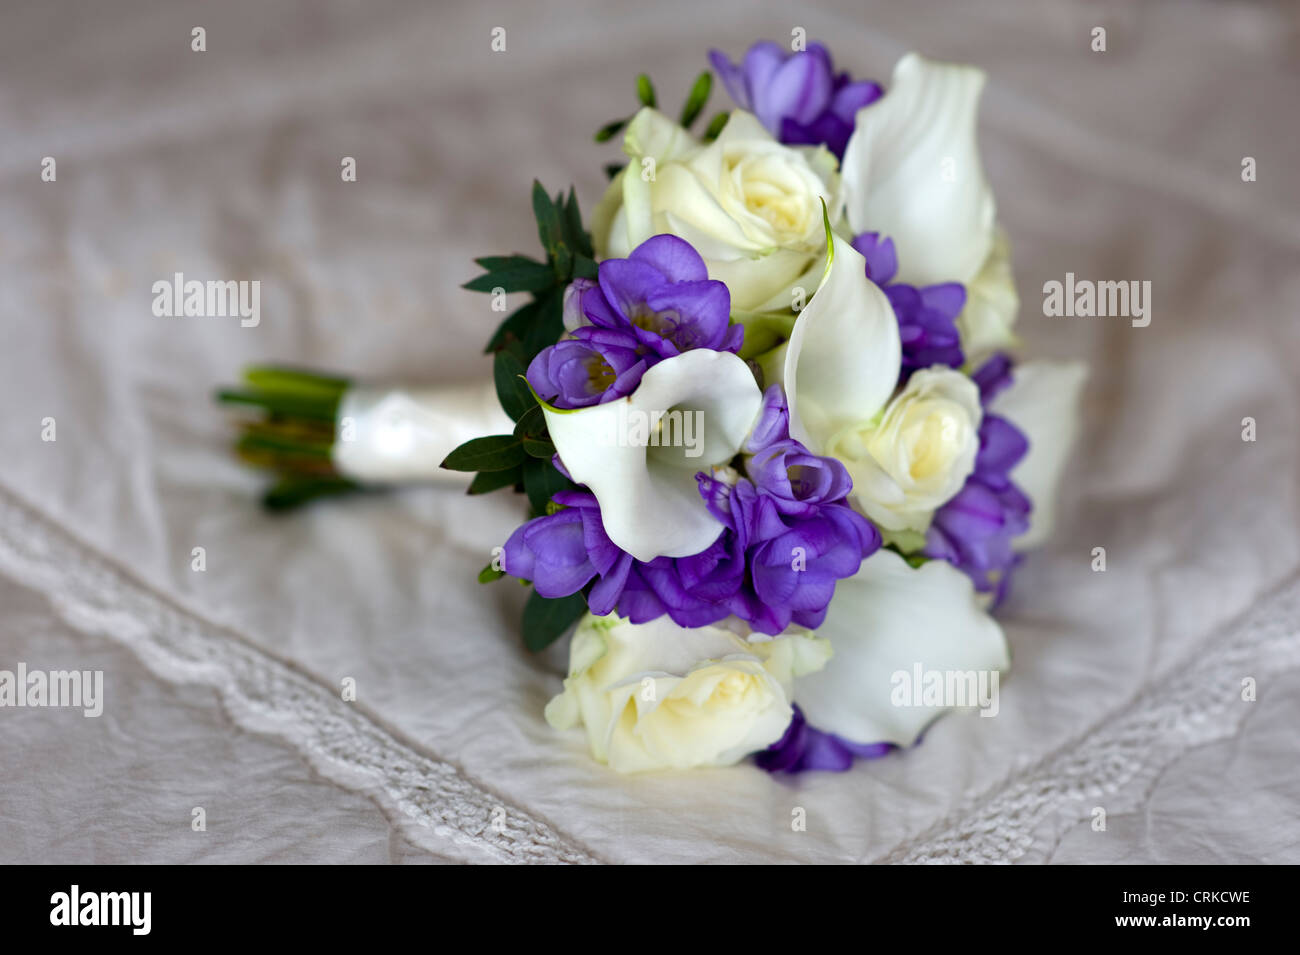 wedding bouquet of freesia, lilies and roses in white and purple - Stock Image